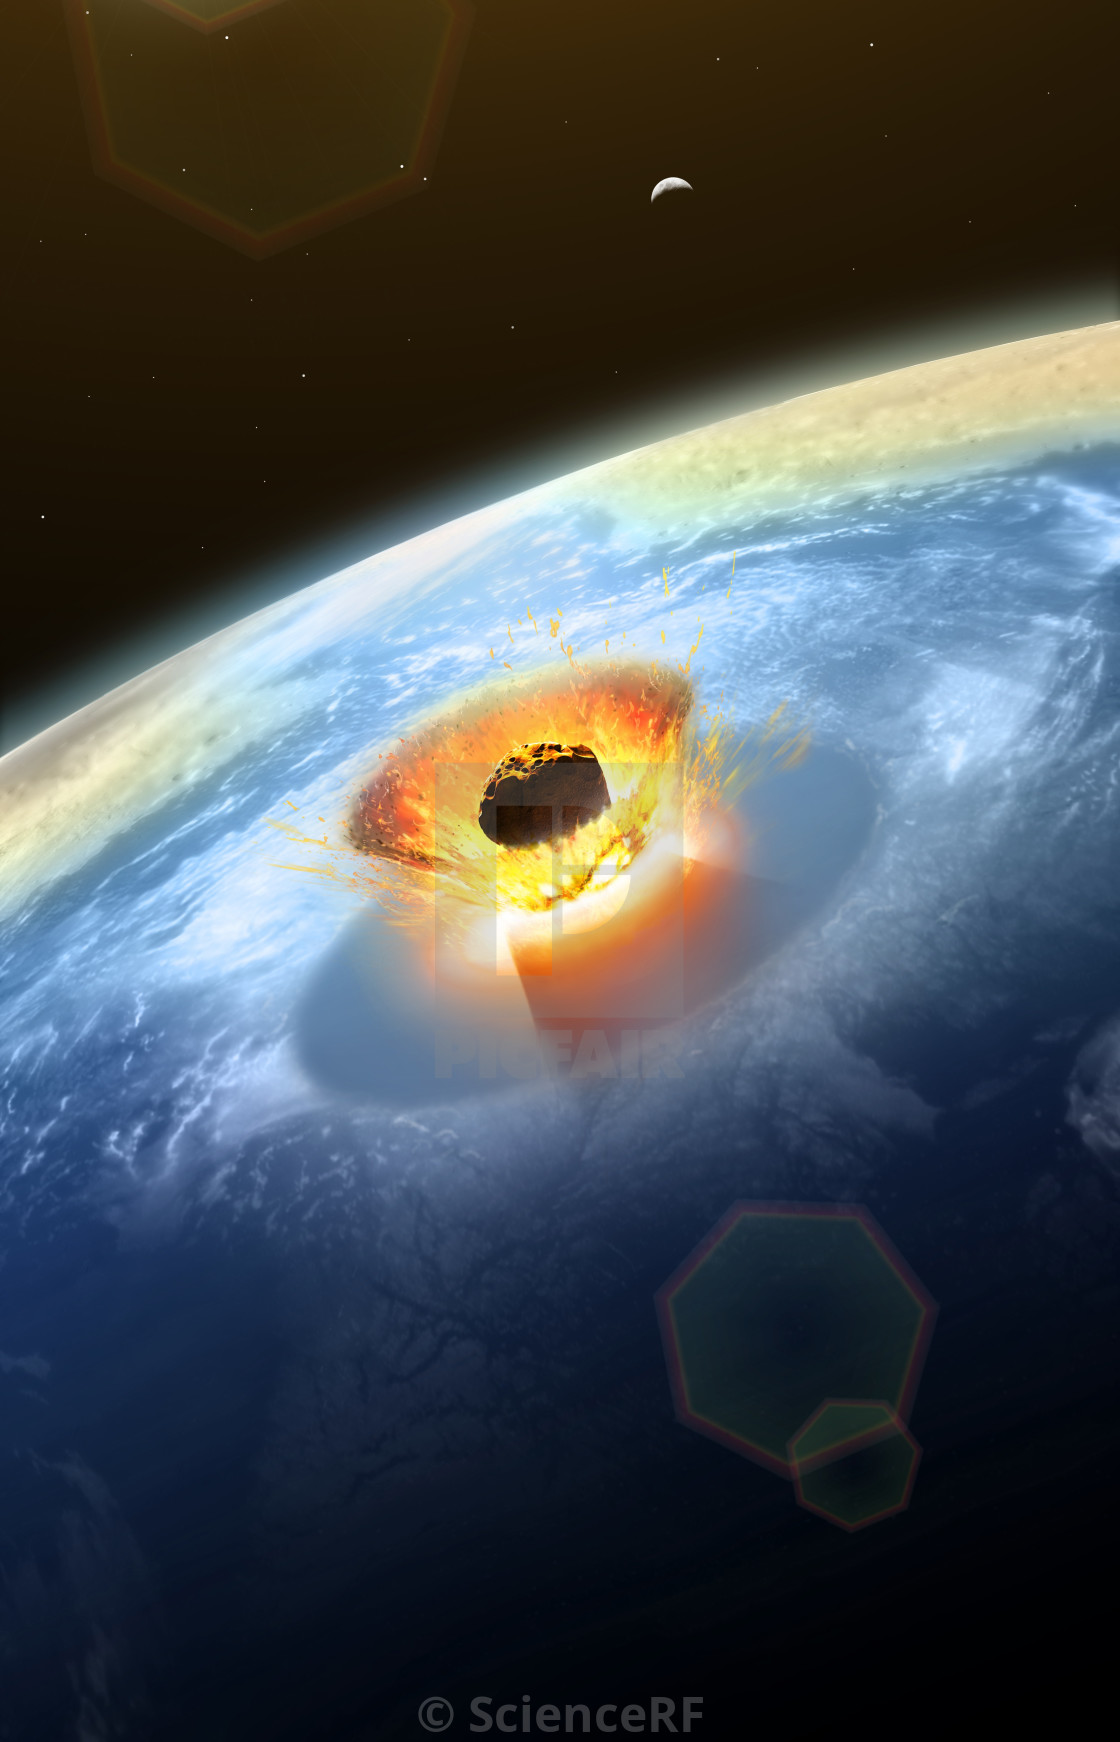 Chicxulub Asteroid Impact - License, download or print for